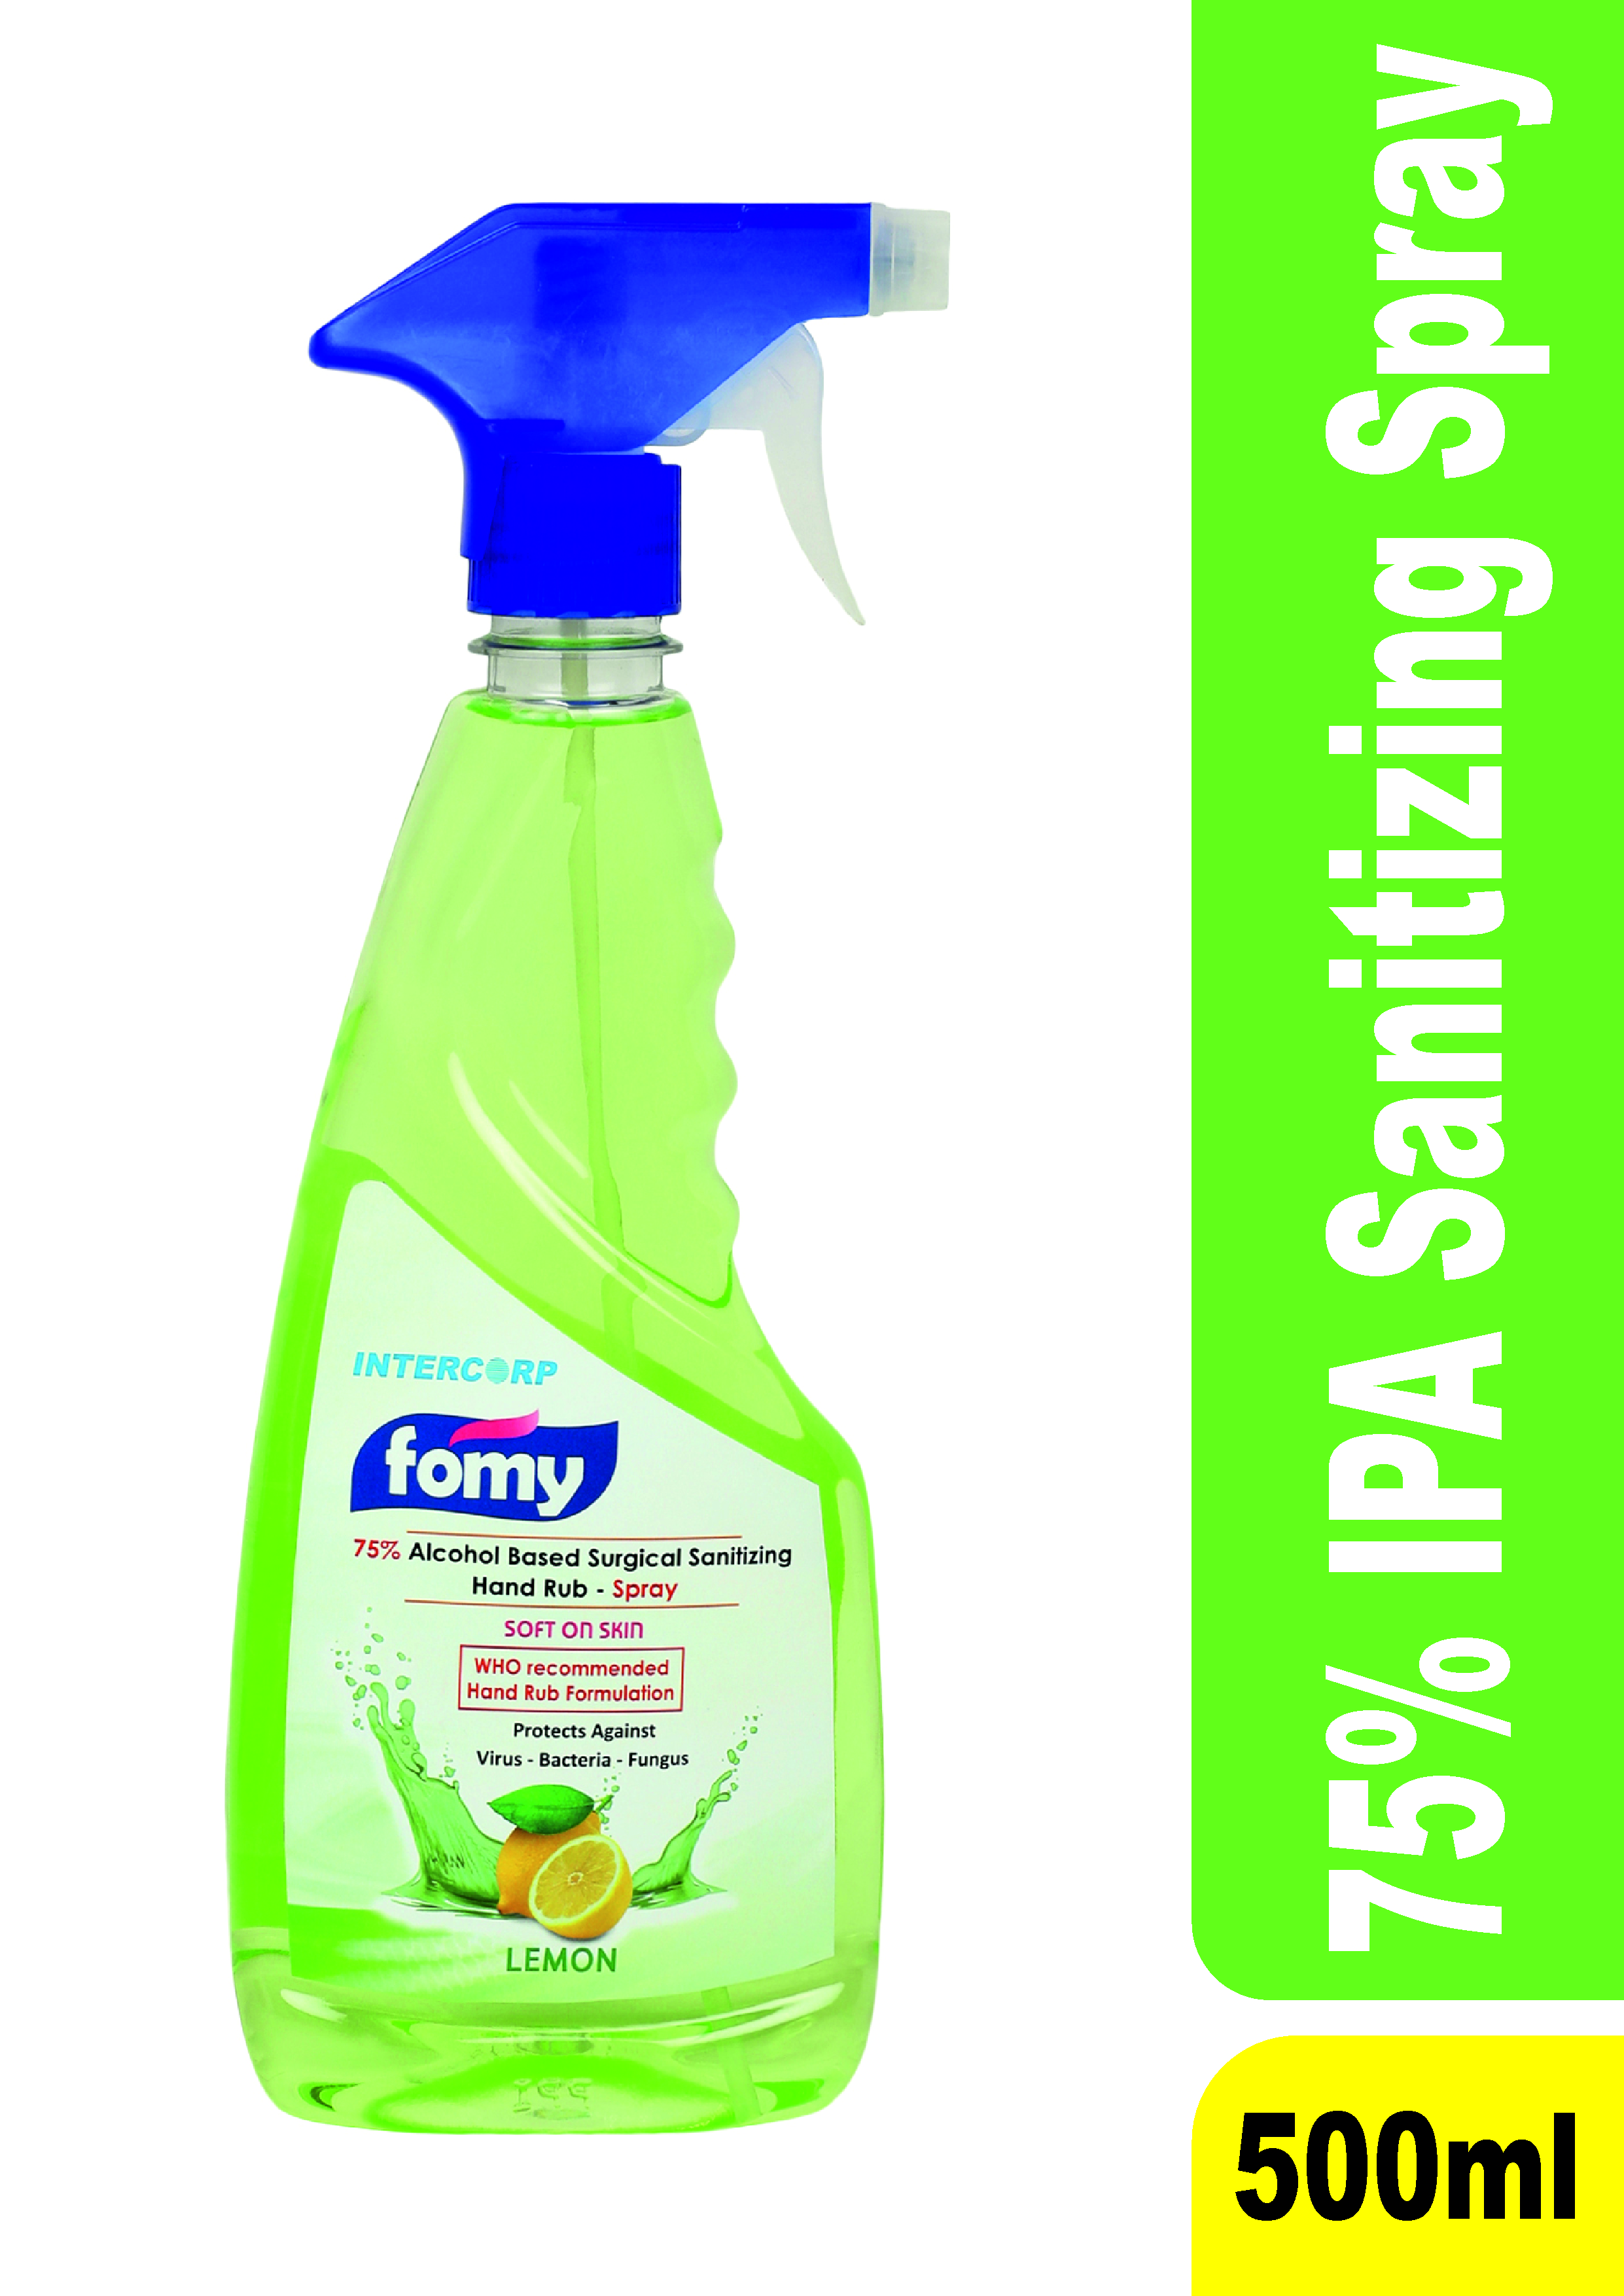 Personal Care Products - Hygiene Care Products